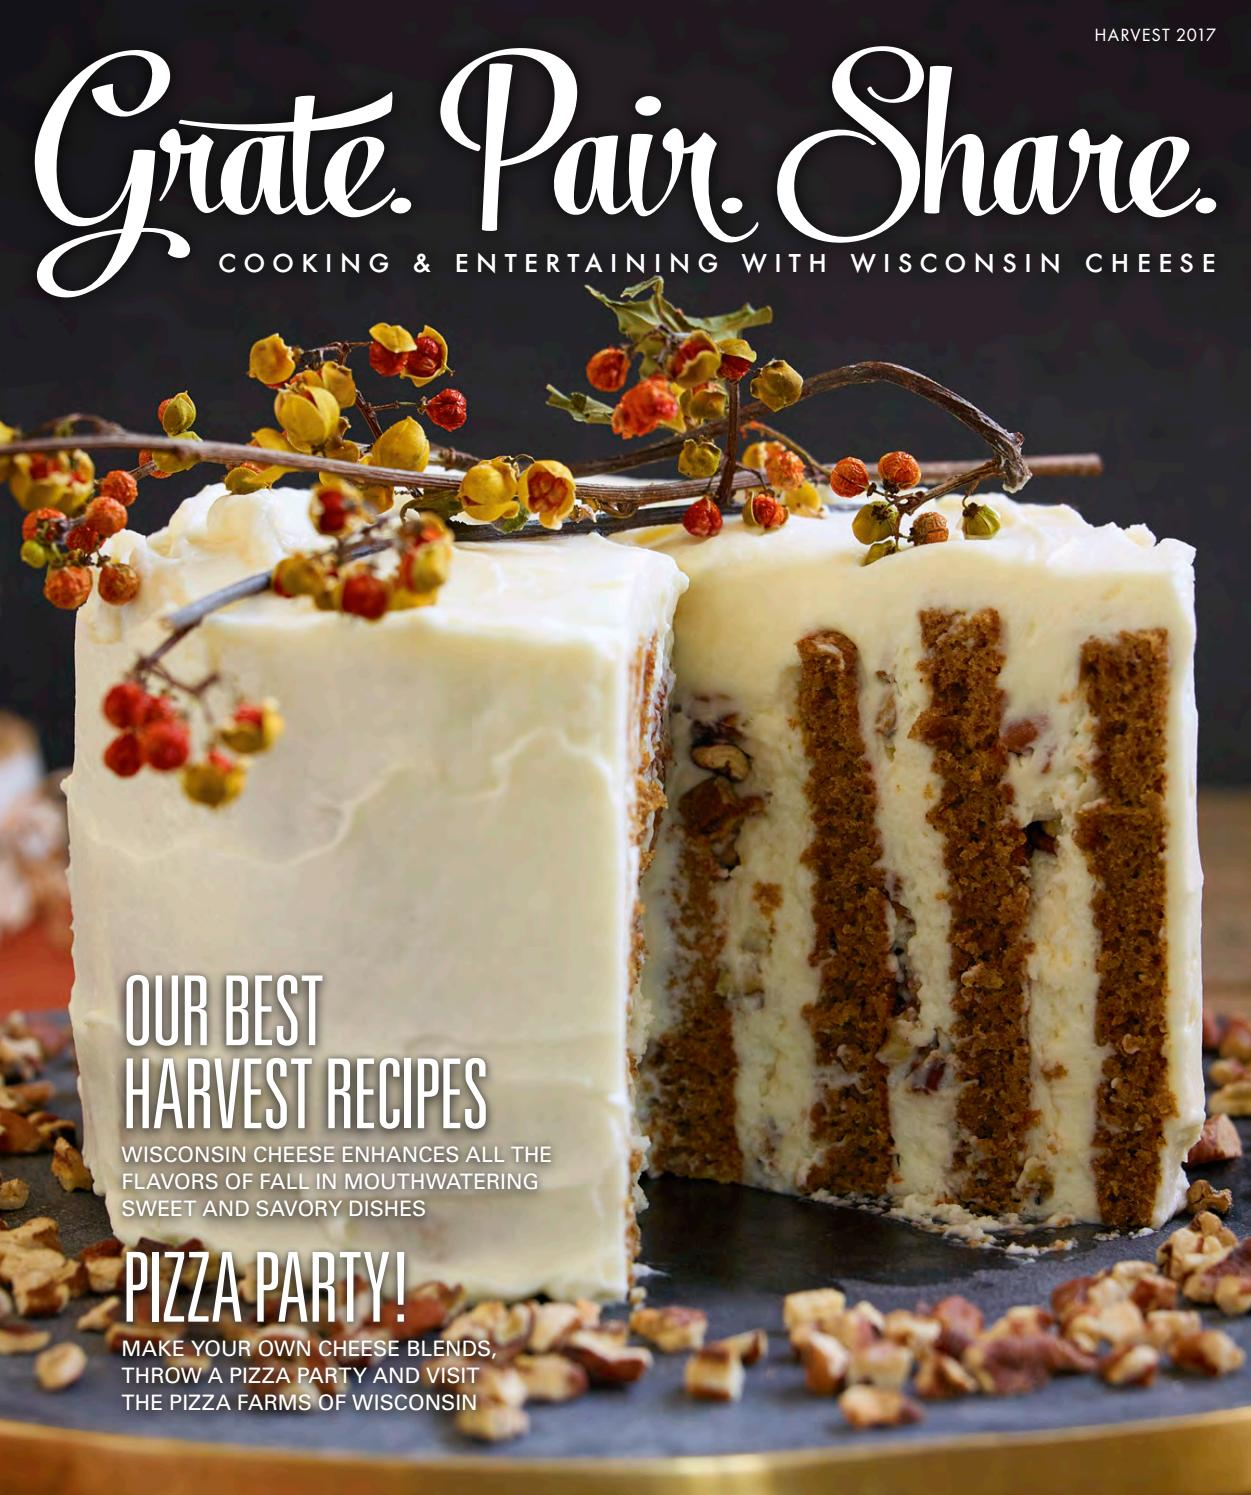 Grate  Pair  Share  Harvest 2017 by Dairy Farmers of Wisconsin - issuu